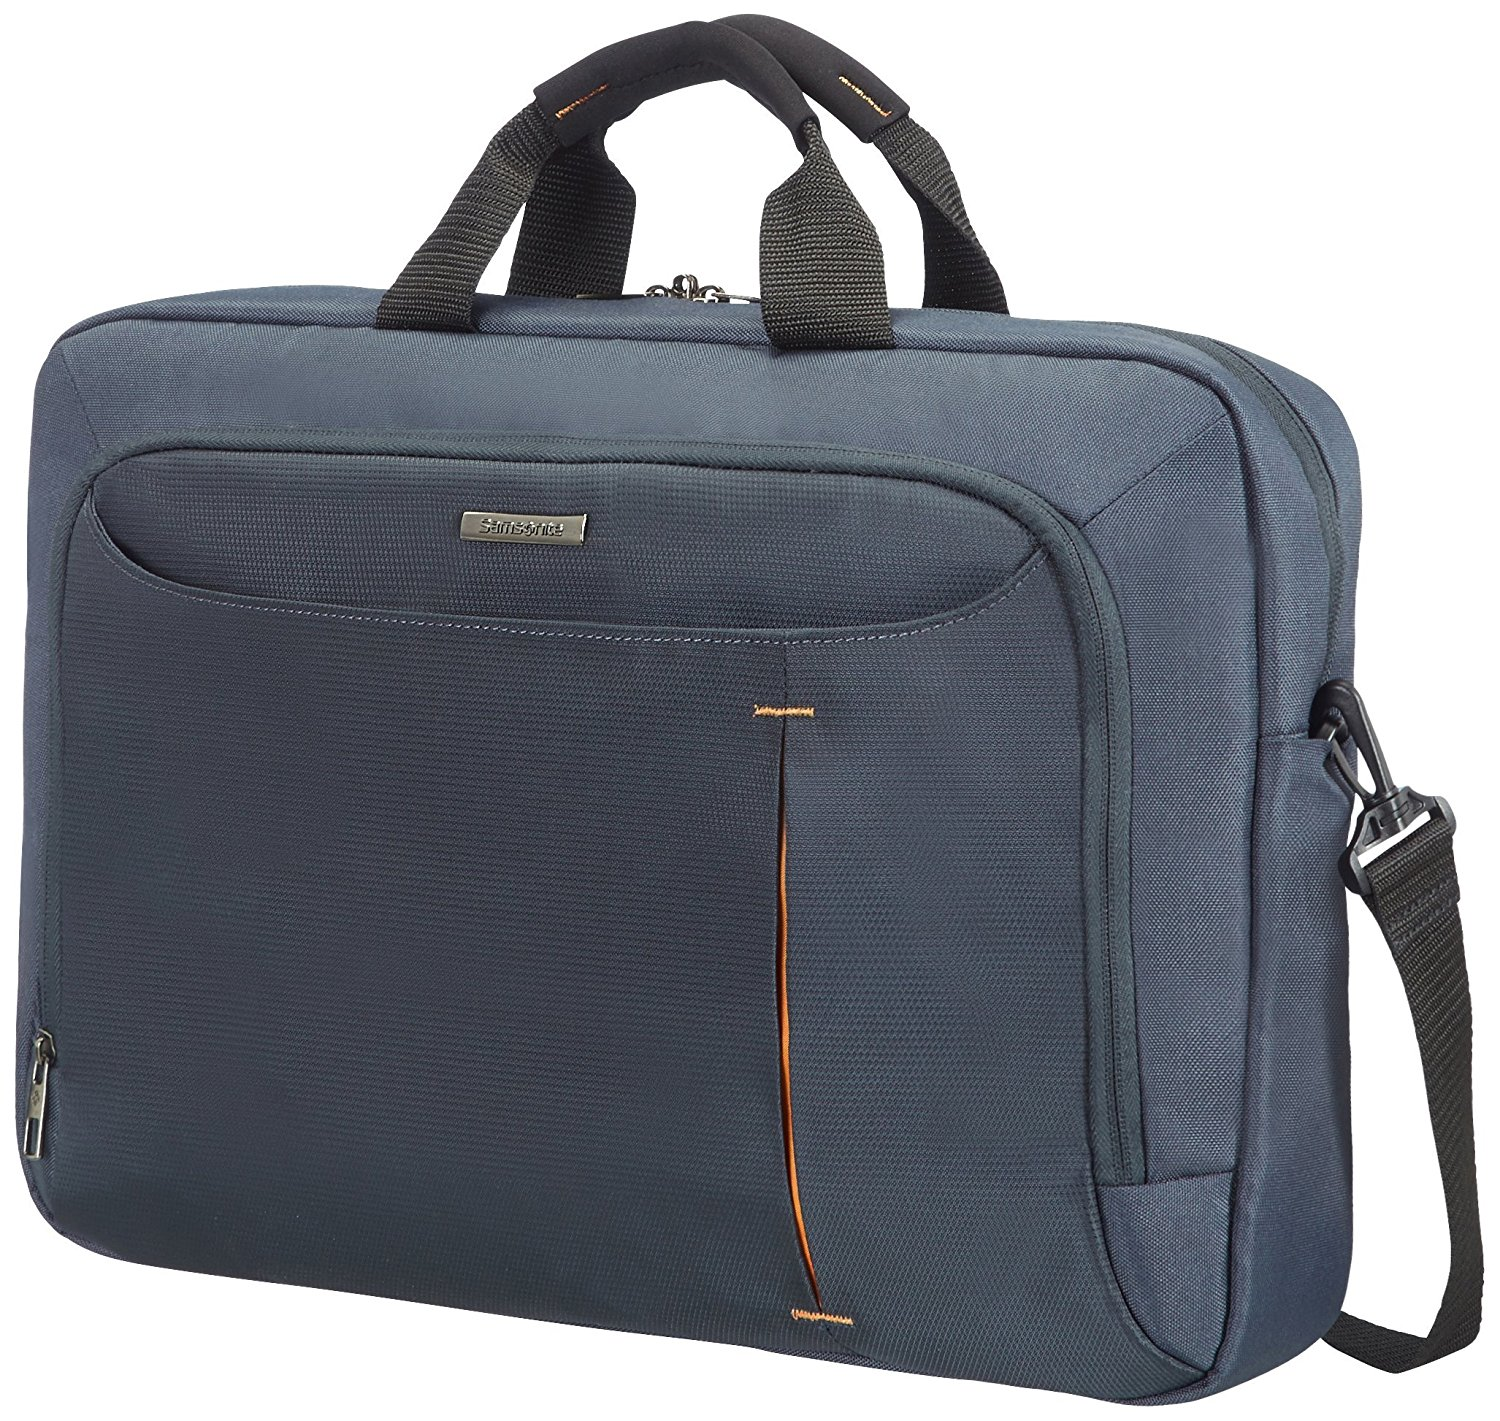 Samsonite Tasche Notebook amazon